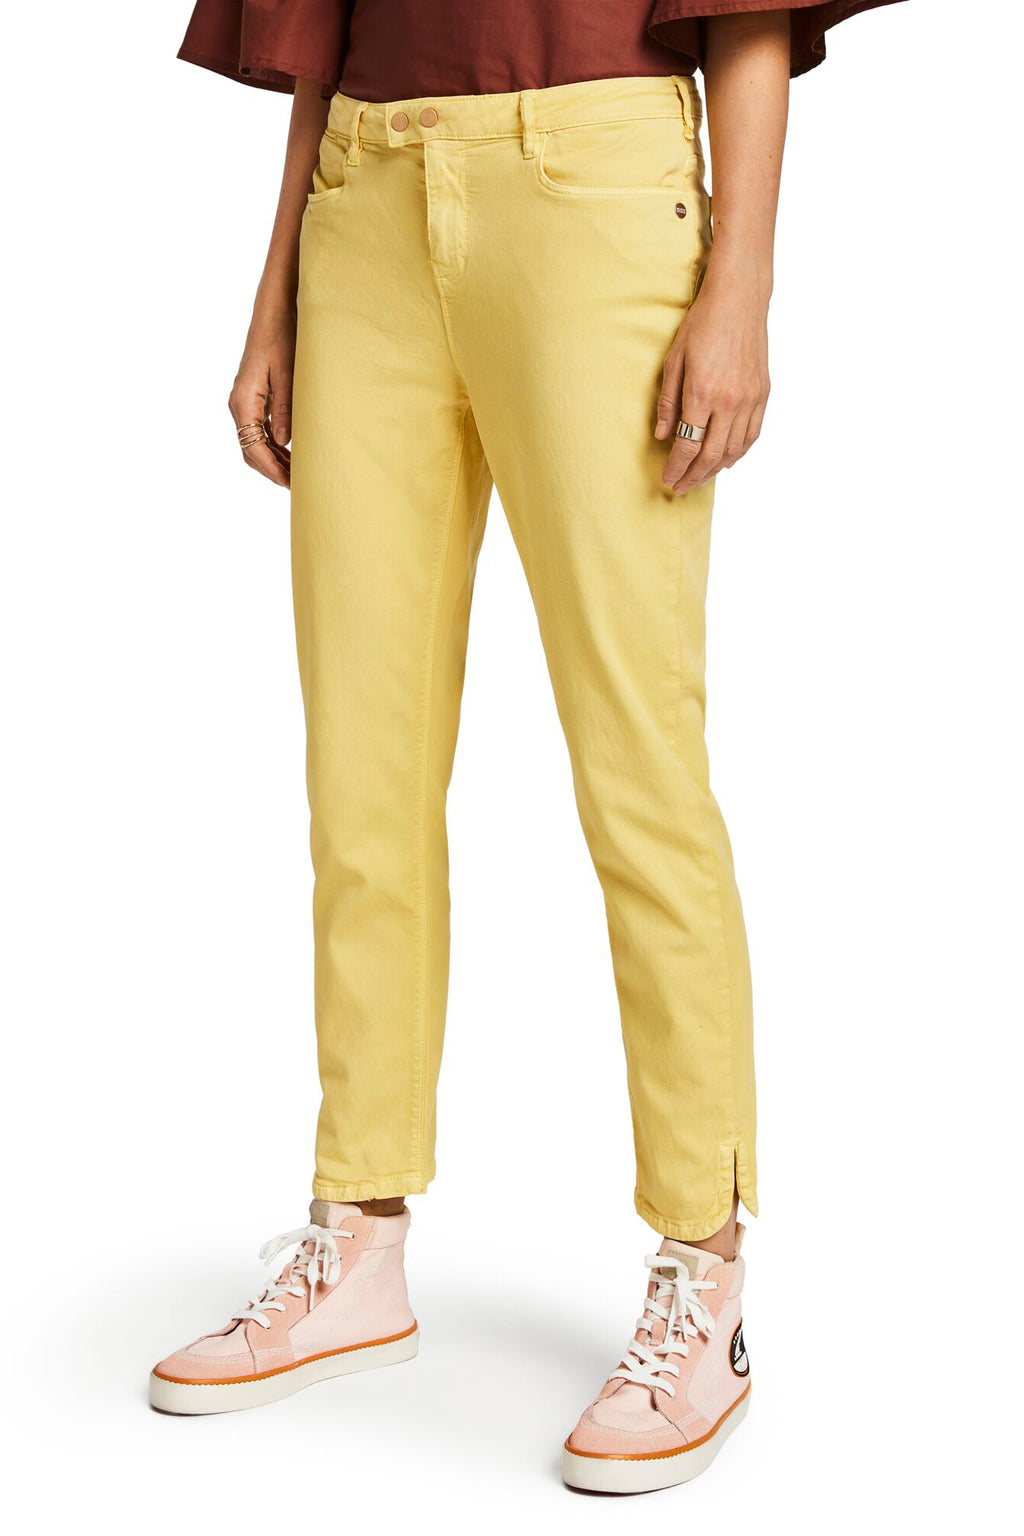 SCOTCH AND SODA - Petit Ami Slim Boyfriend Pants online at PAYA boutique